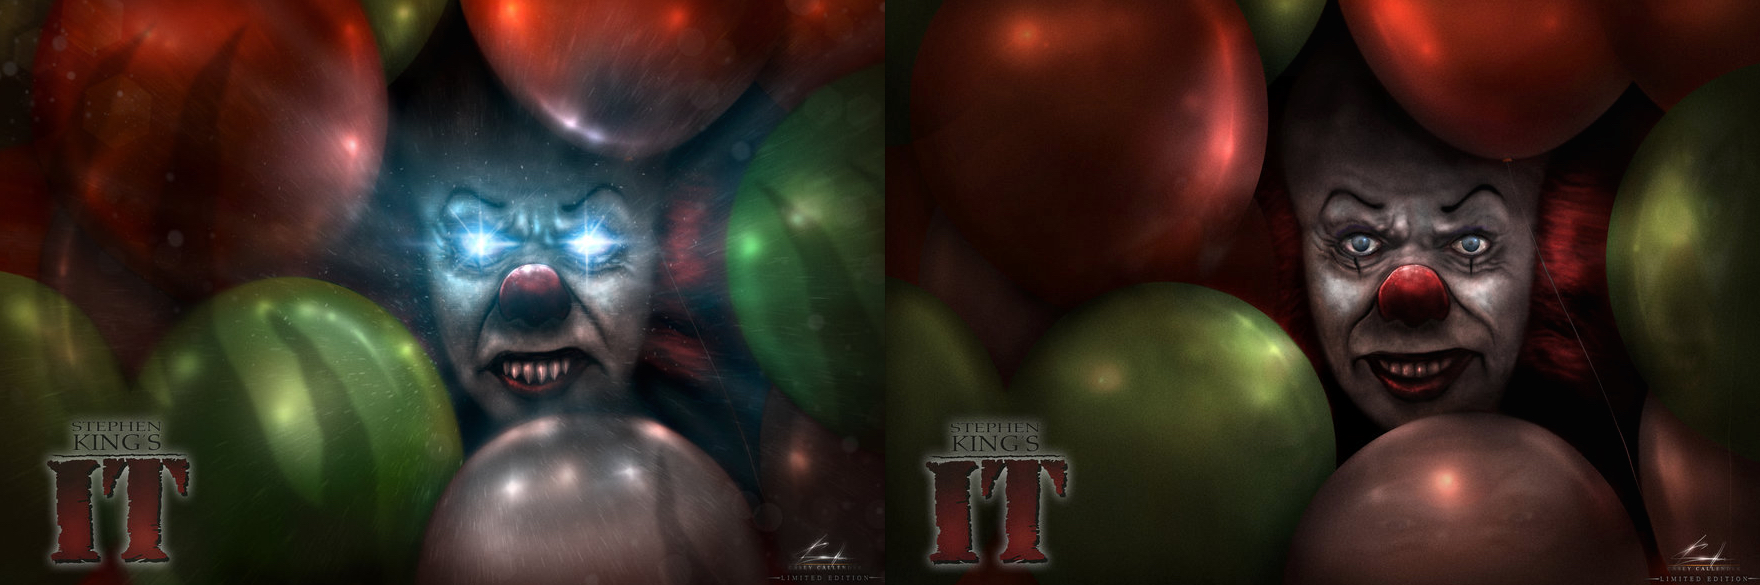 IT At 25 : Casey Callender Pennywise Art